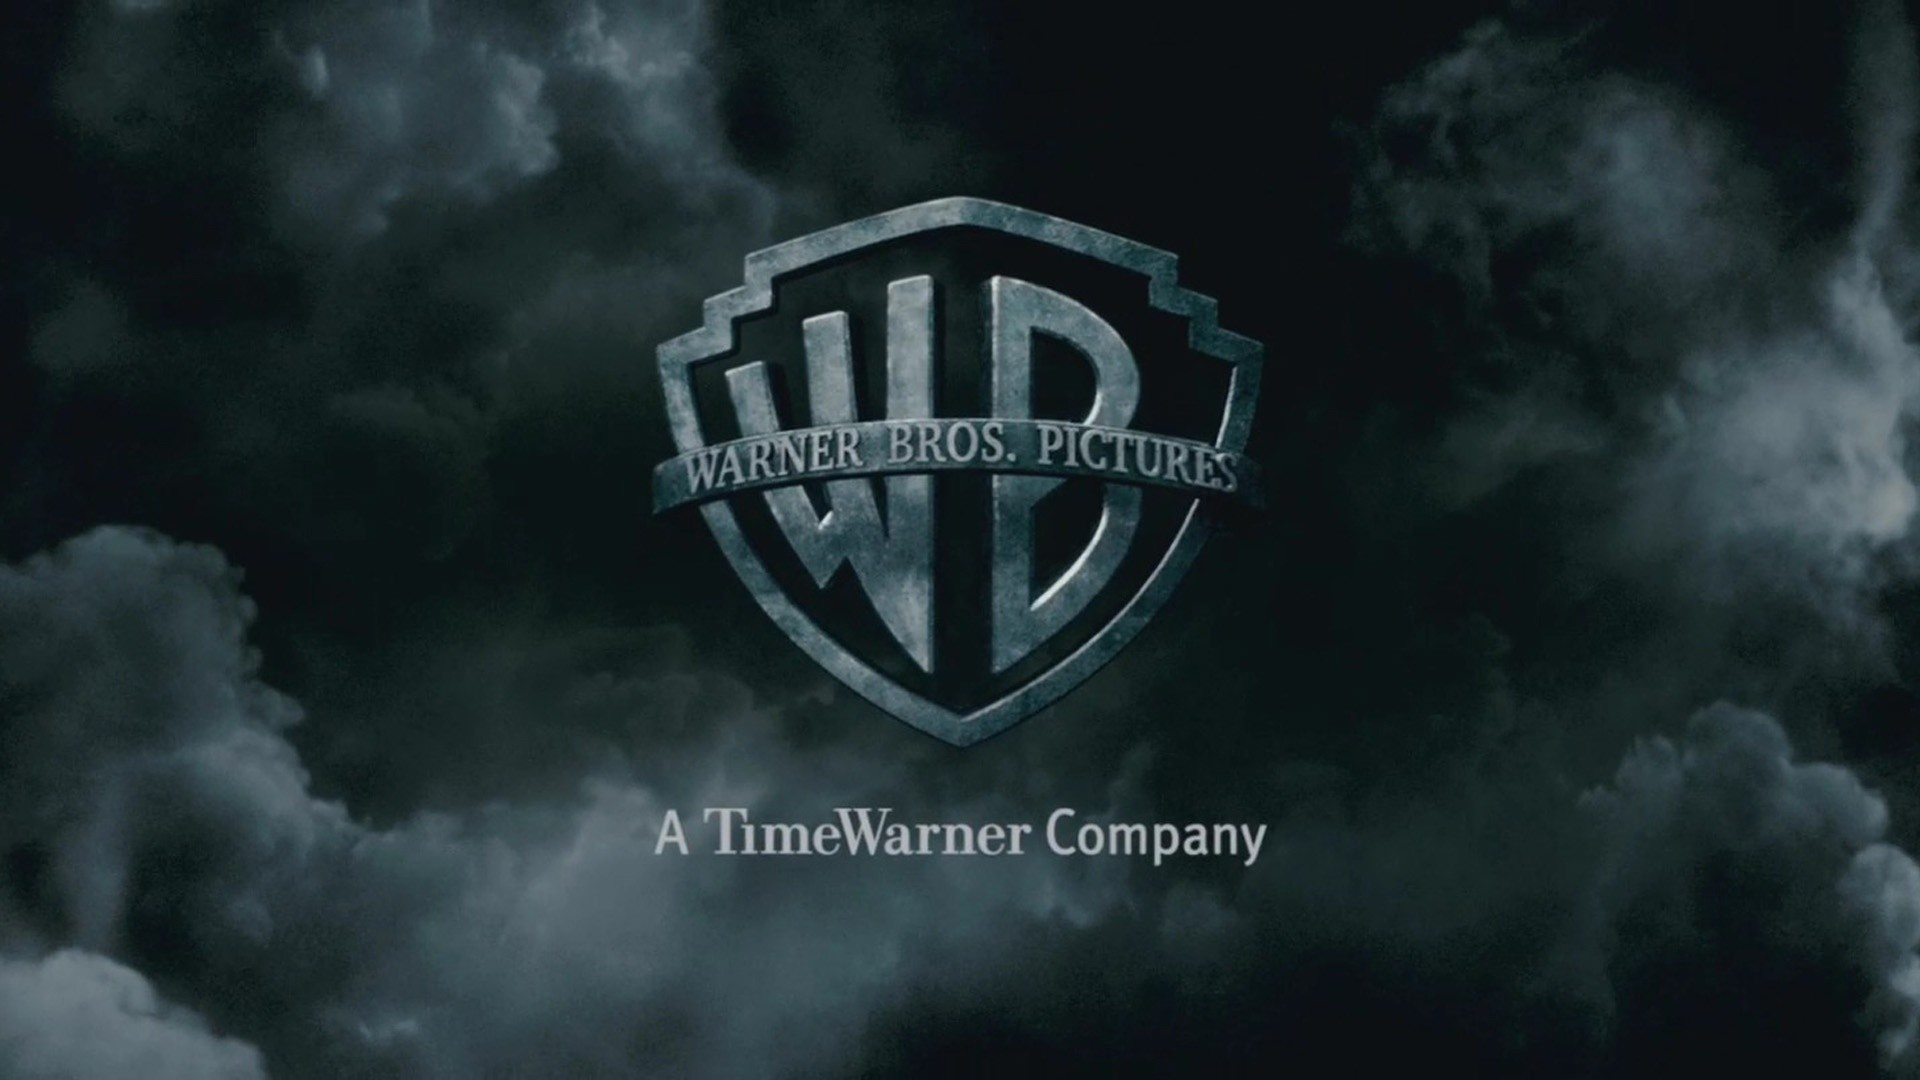 … Free Harry Potter Movie Logos Wallpapers Just For You! We Try to  Present Harry Potter